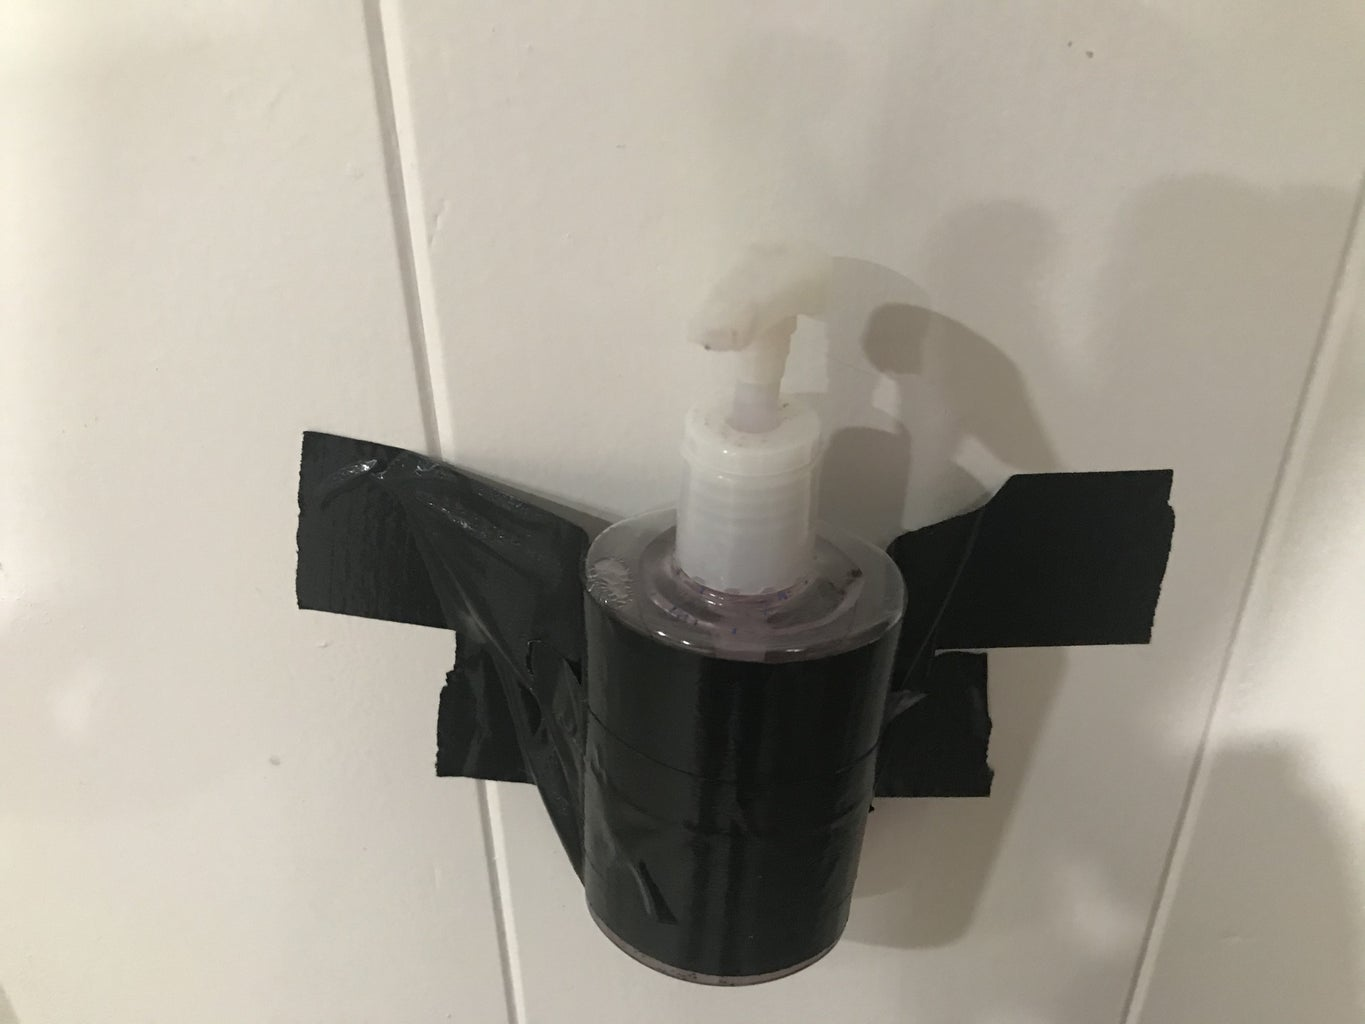 Attach Hand Sanitizer to Wall